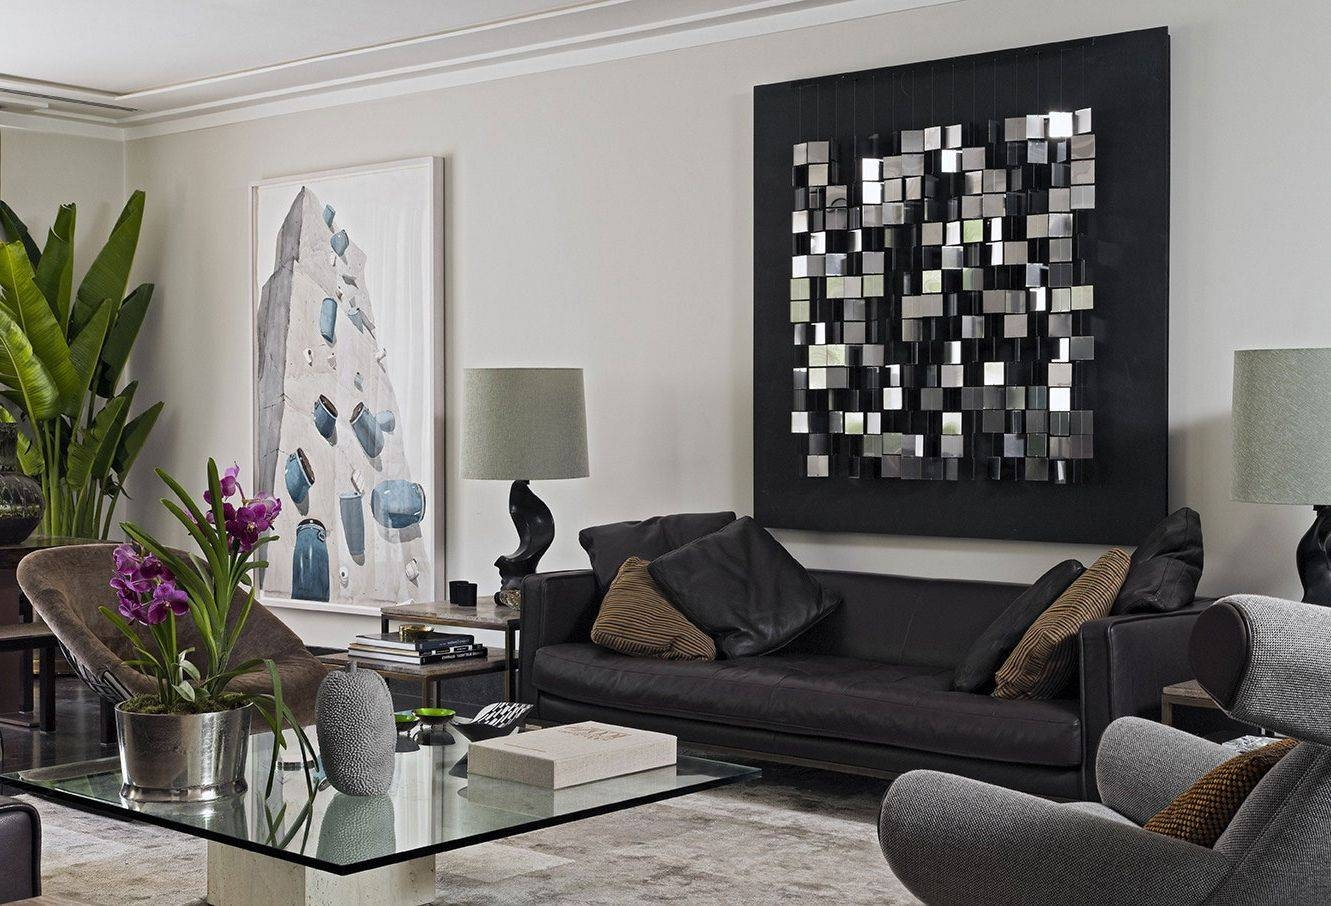 Decorative Wall Art For Living Room And Modern Decor Ideas Inside Newest Wall Art For Living Room (View 14 of 20)